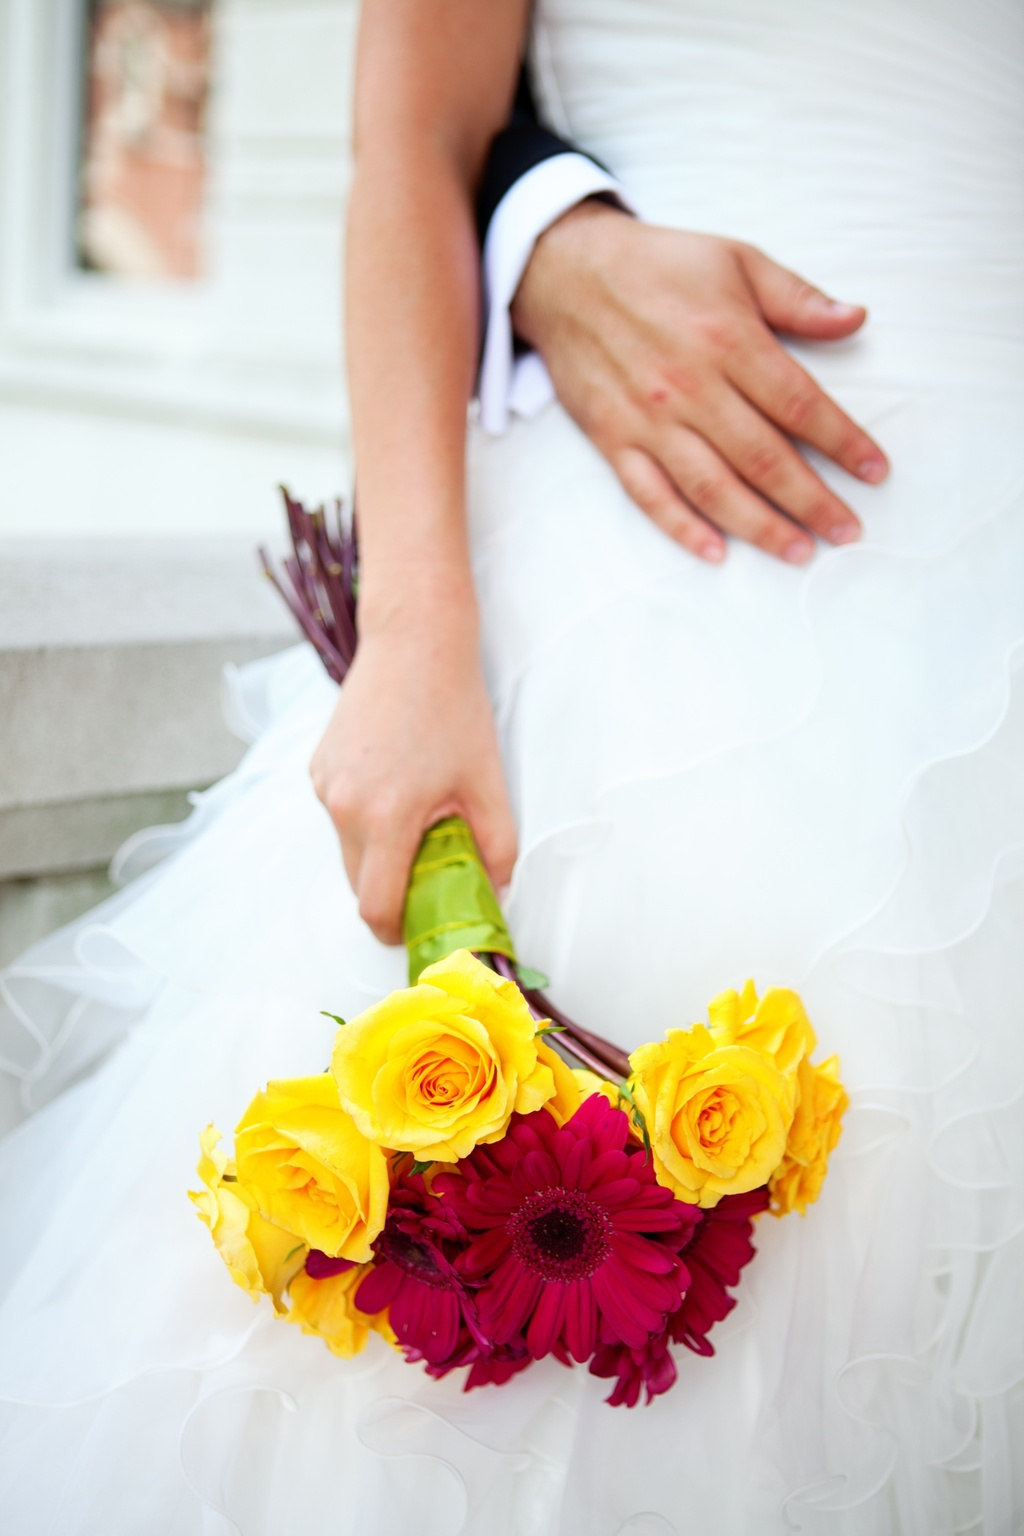 Real-weddings-new-york-wedding-photography-yellow-roses-red-gerbera-daisies-bridal-bouquet.full